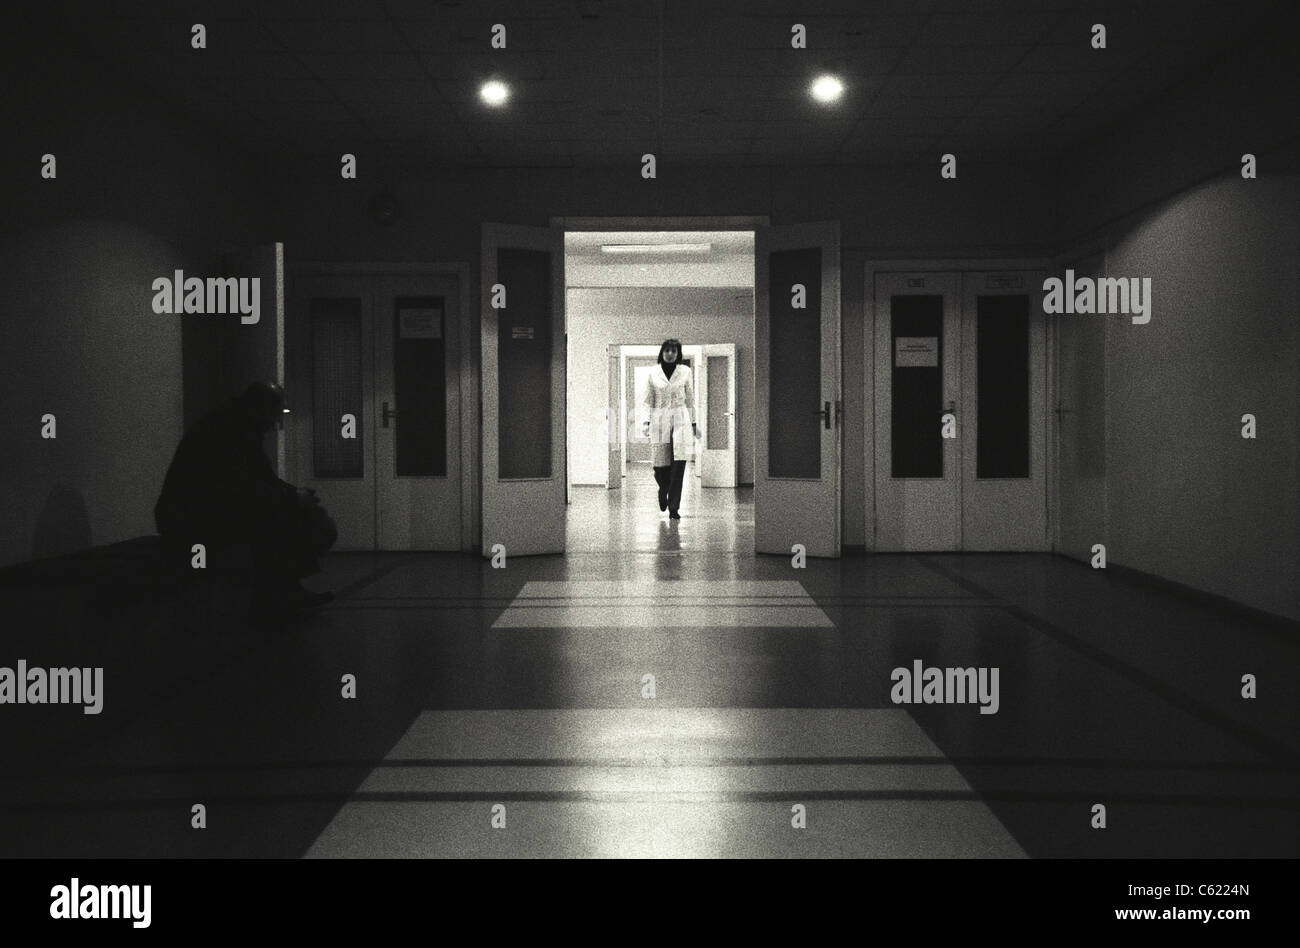 Thyroid Cancer Ward in hospital, Kiev, Ukraine, where many people suffer from cancers allegedly caused by the Chernobyl - Stock Image